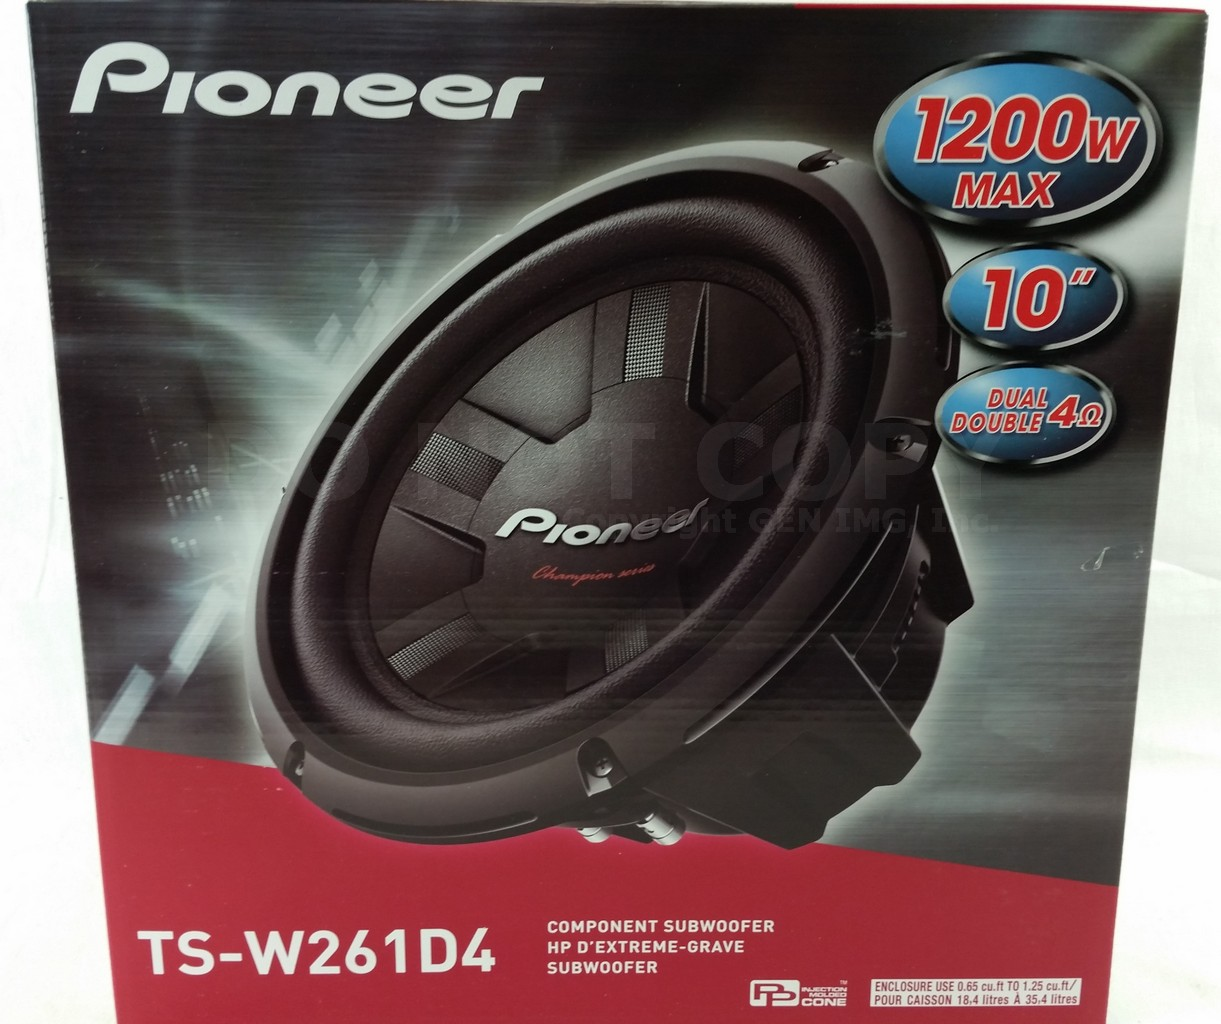 pioneer ts w261d4 1200w 10 champion series dual 4 ohm car subwoofer tsw261d4 ebay. Black Bedroom Furniture Sets. Home Design Ideas